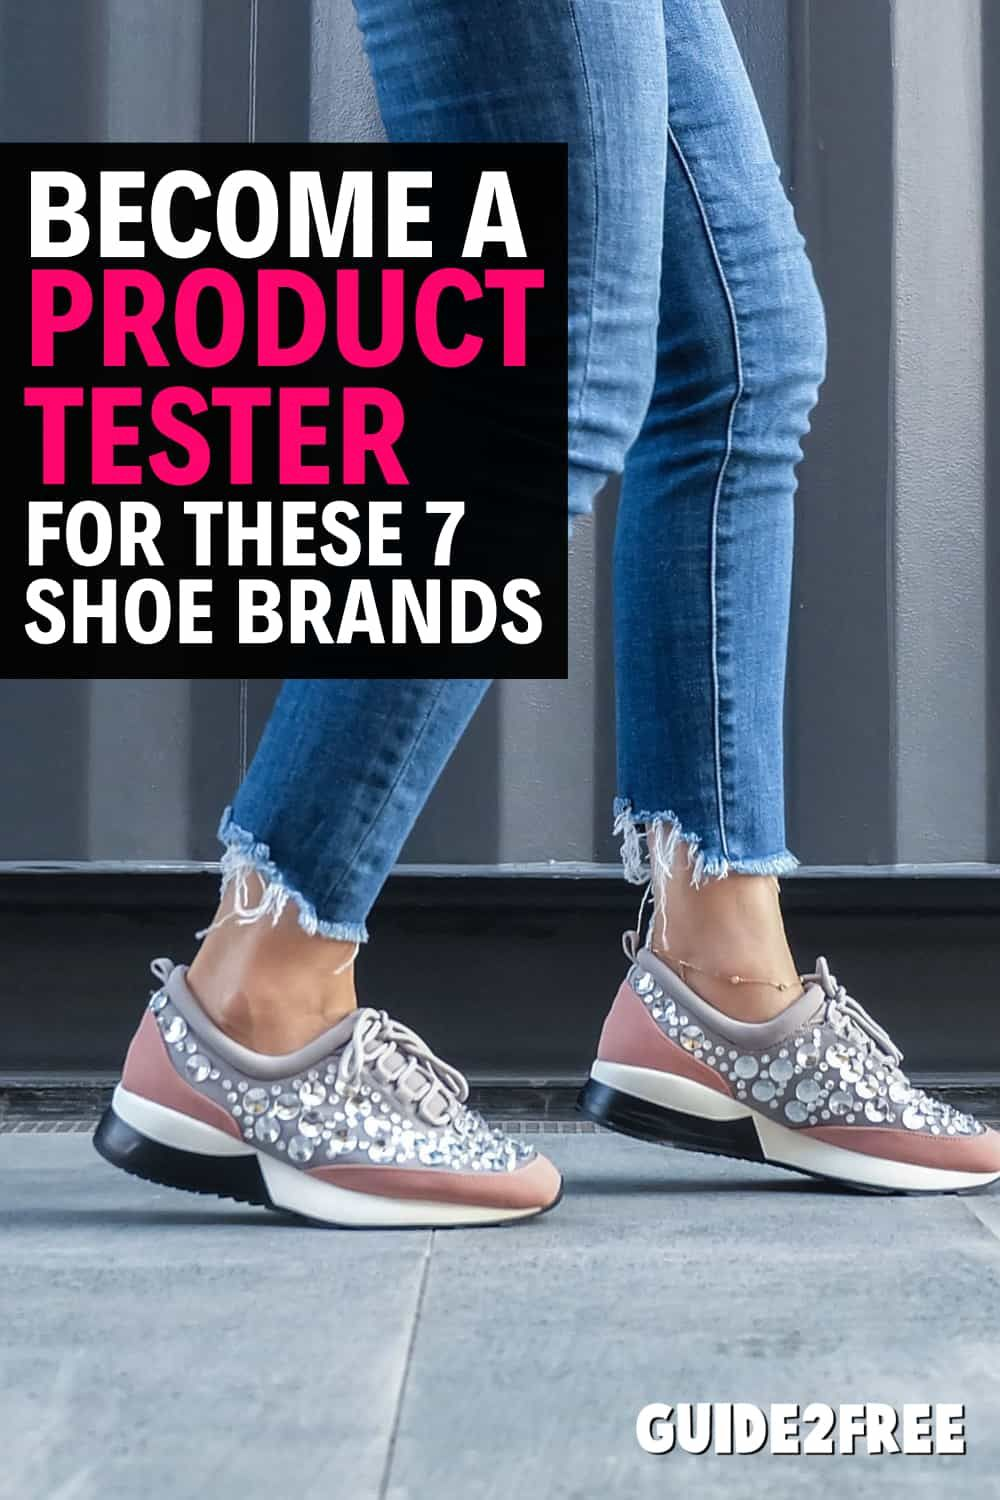 Get Free Shoes When You Become A Product Tester For These 7